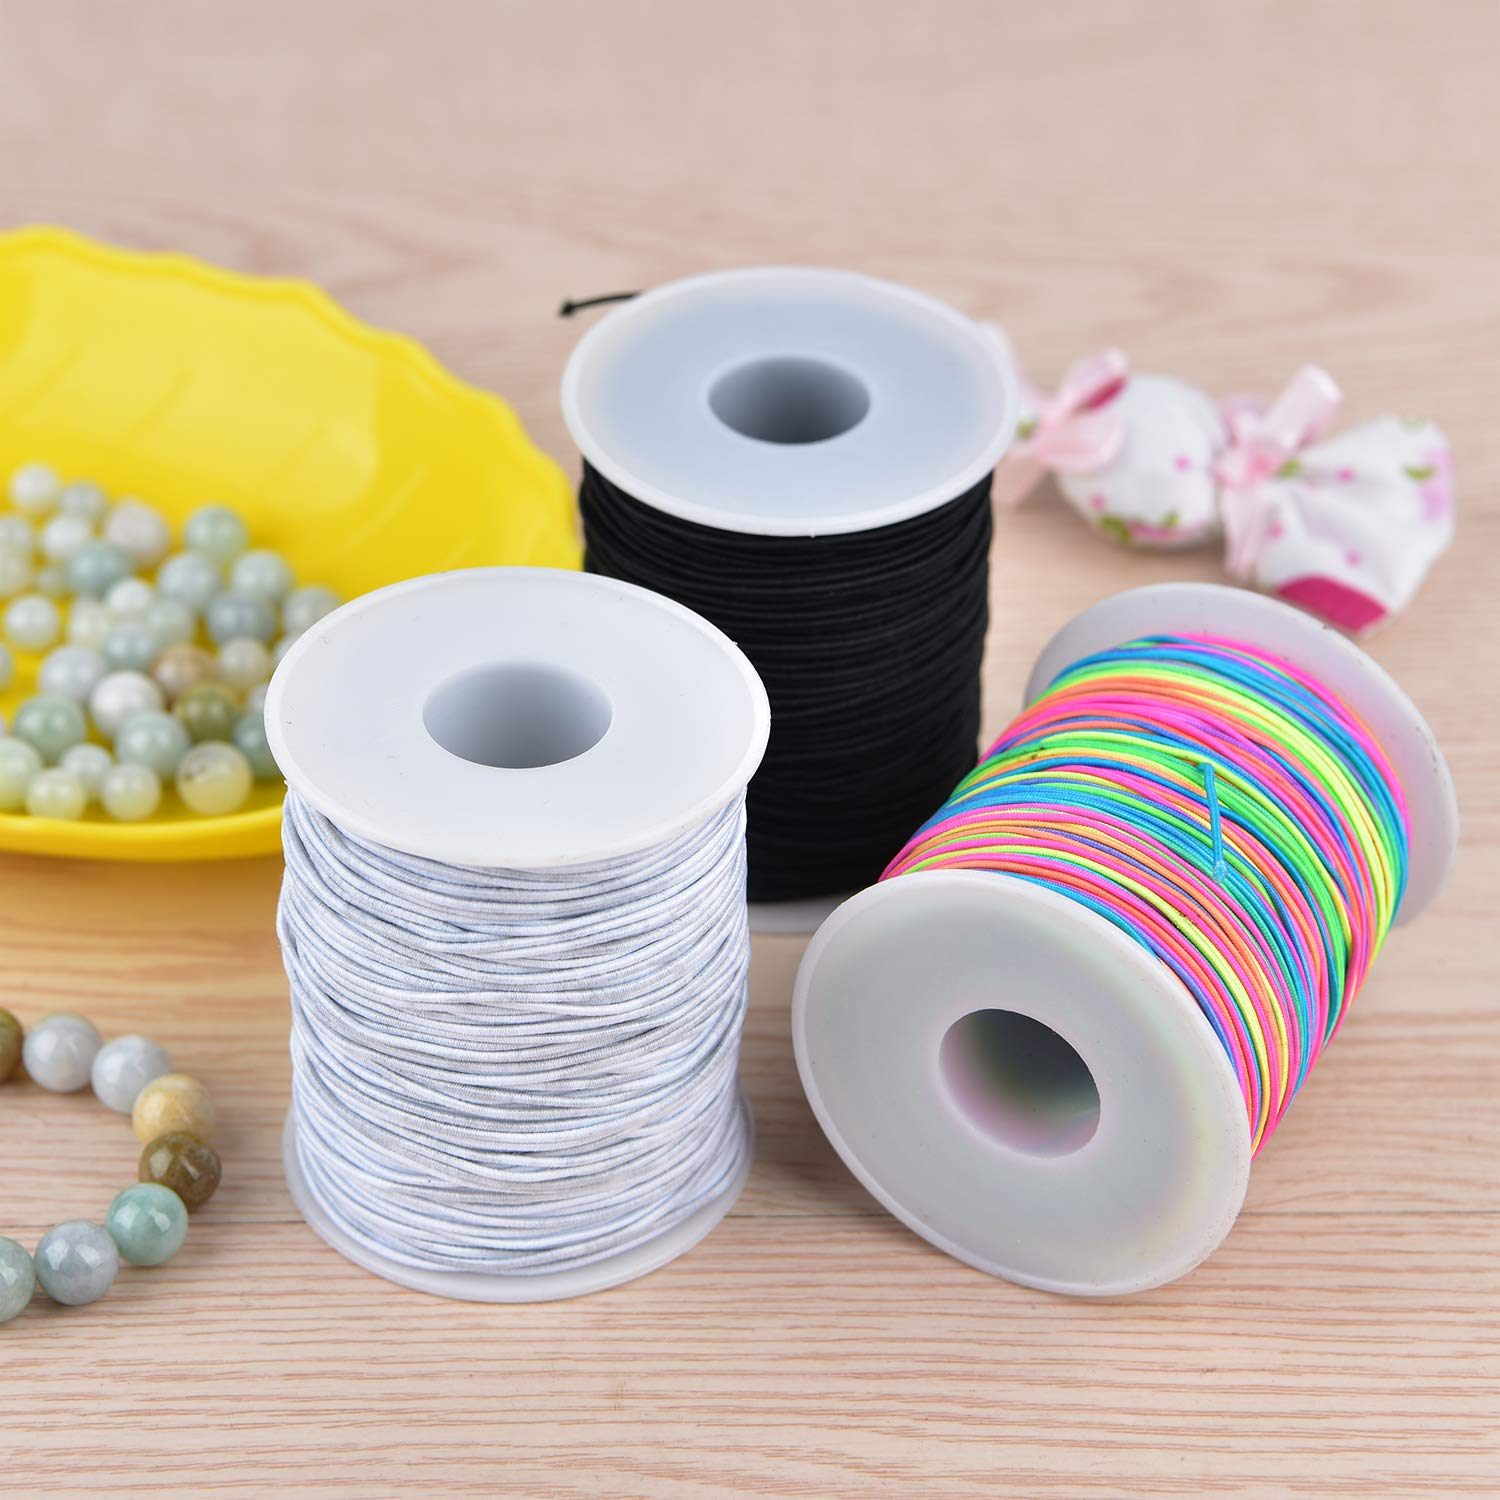 Black Zealor 2 Roll 1 mm Elastic String Cord Elastic Thread Beading String Cord for Jewelry Making Bracelets Beading 100 Meters//Roll